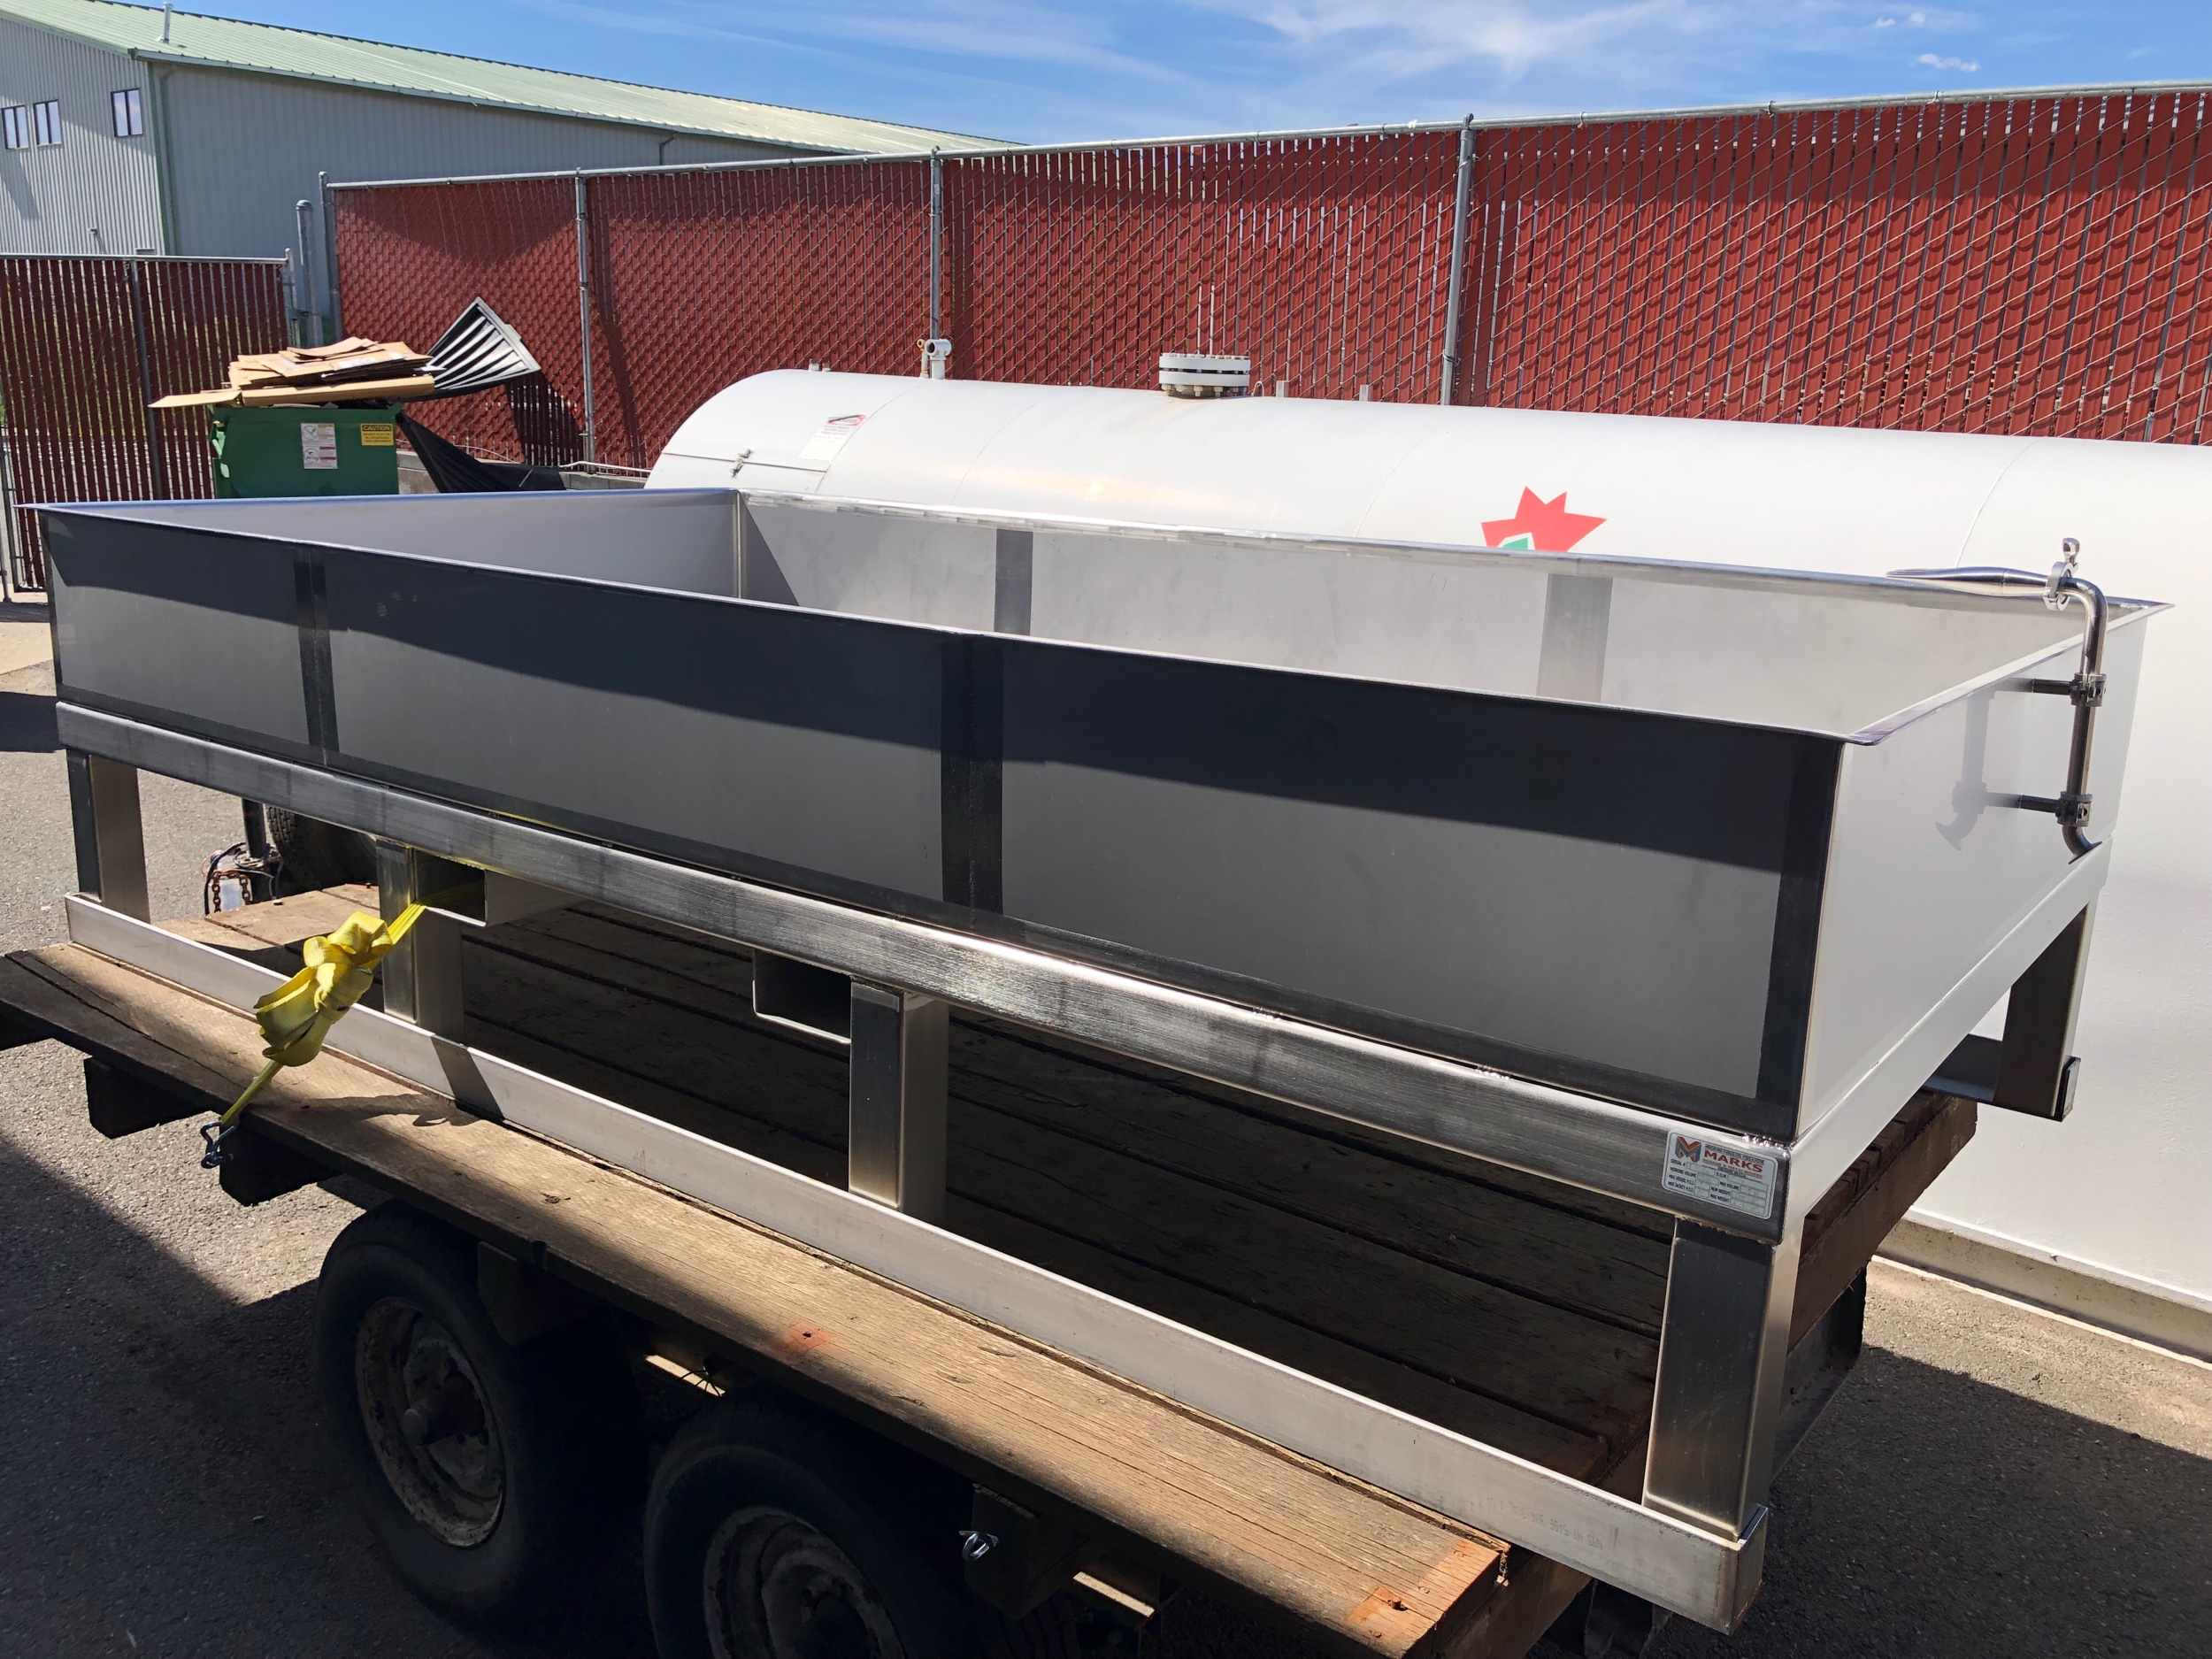 Crux's mobile coolship, which will be positioned around the NW to gather wild yeasts. The first coolship beer is just about to come out—a 3.7% grisette.